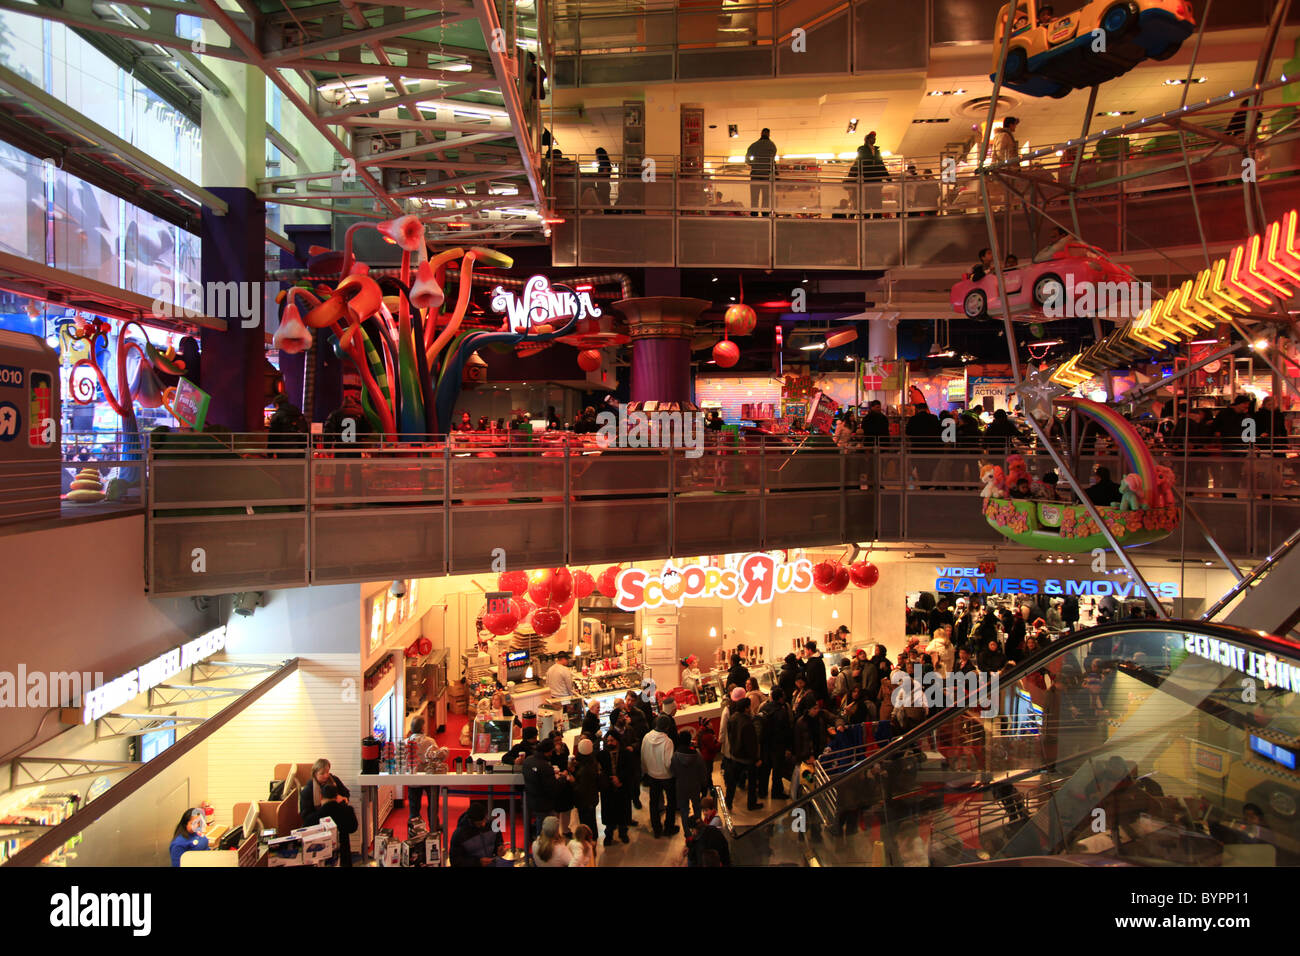 christmas in macy's nyc